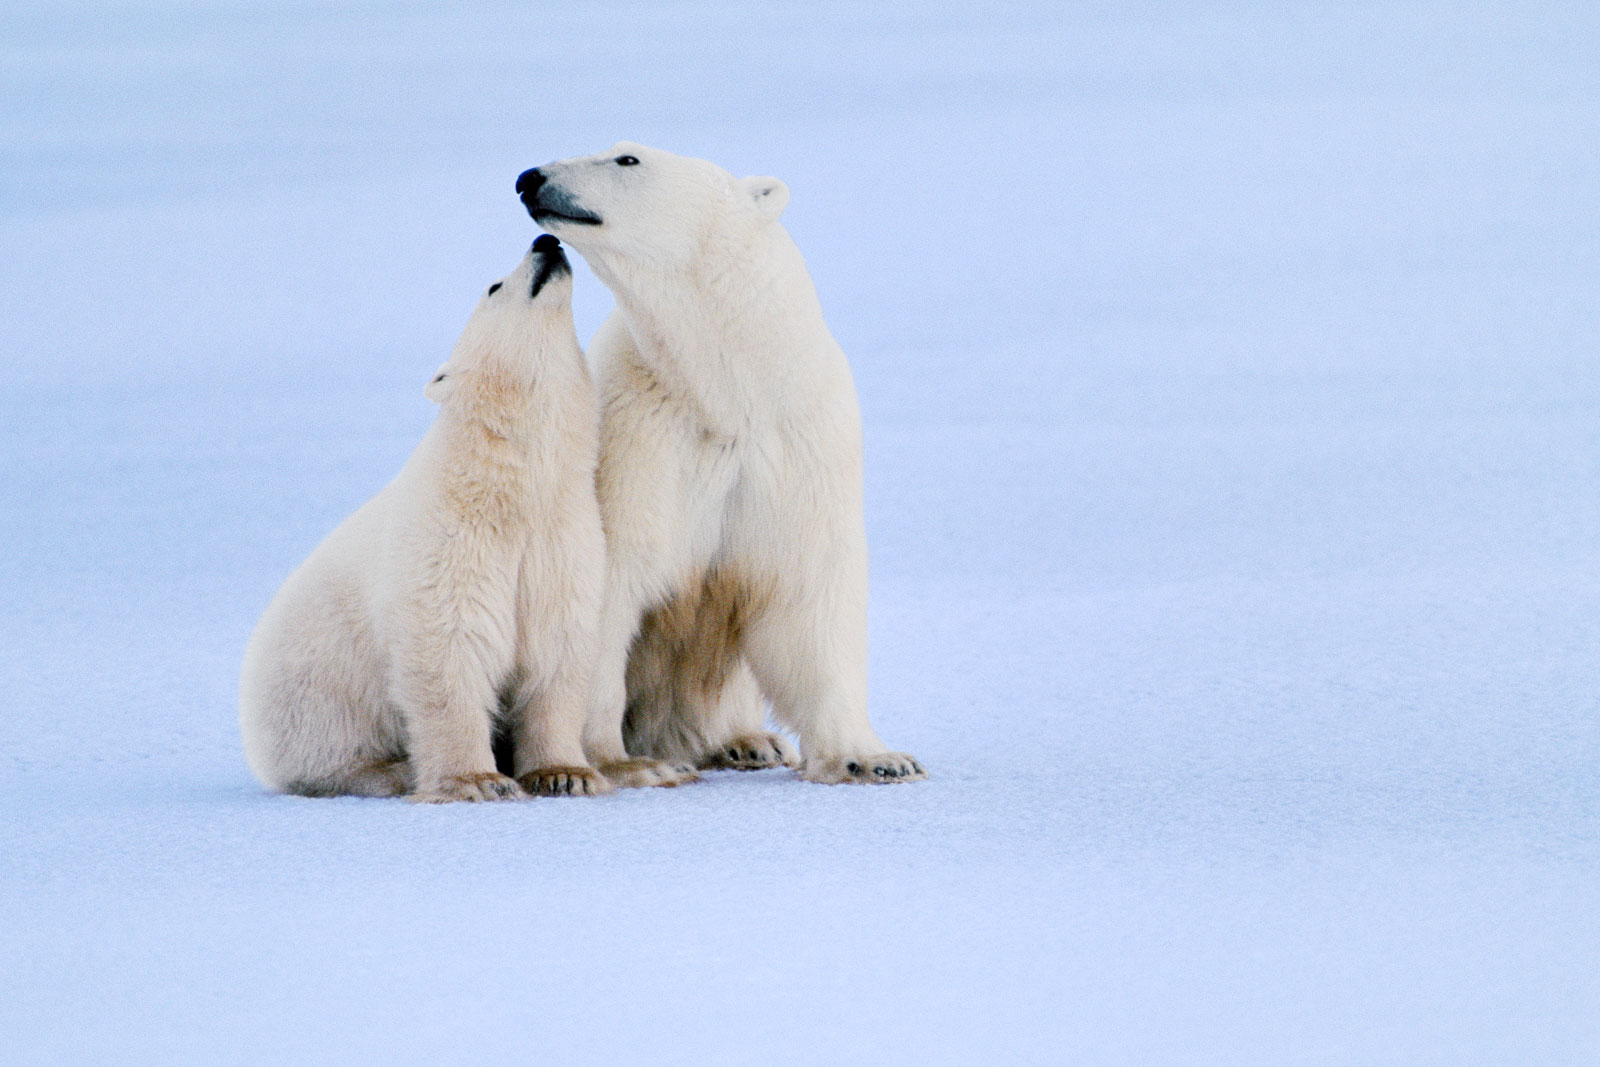 Polar bear mother and cub, Hudson Bay, Canada